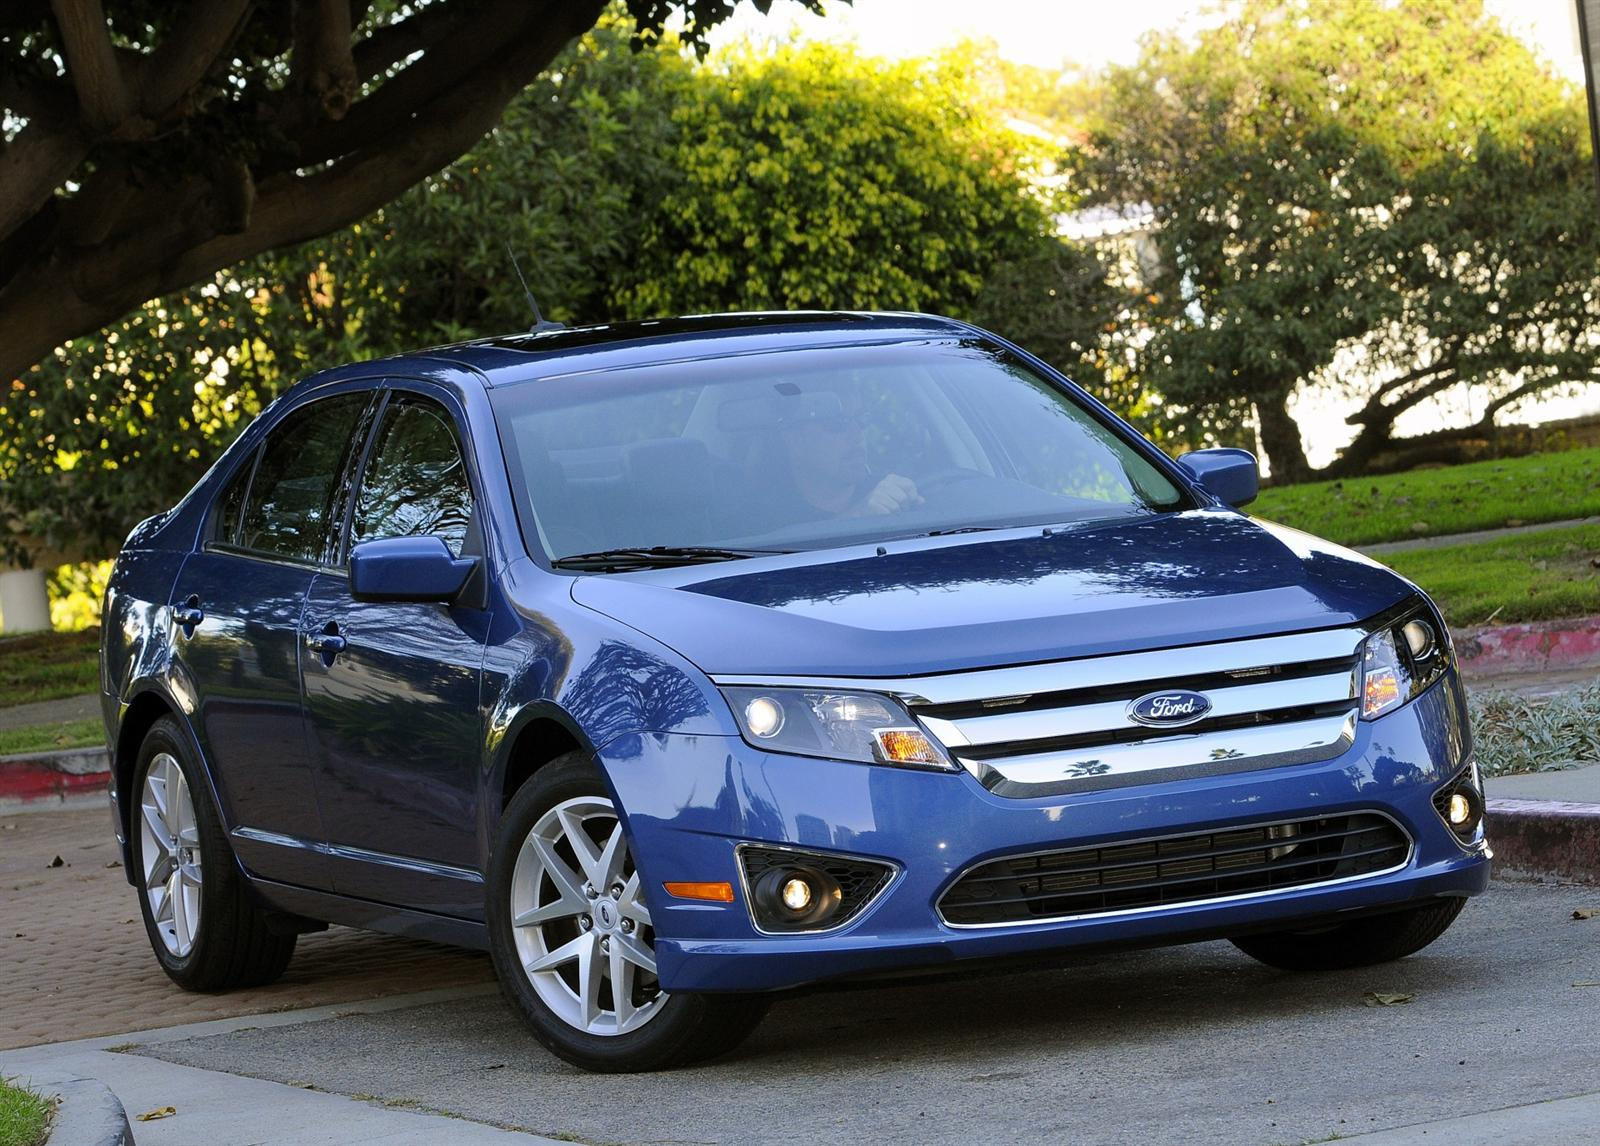 2010 Ford Fusion Hybrid Image